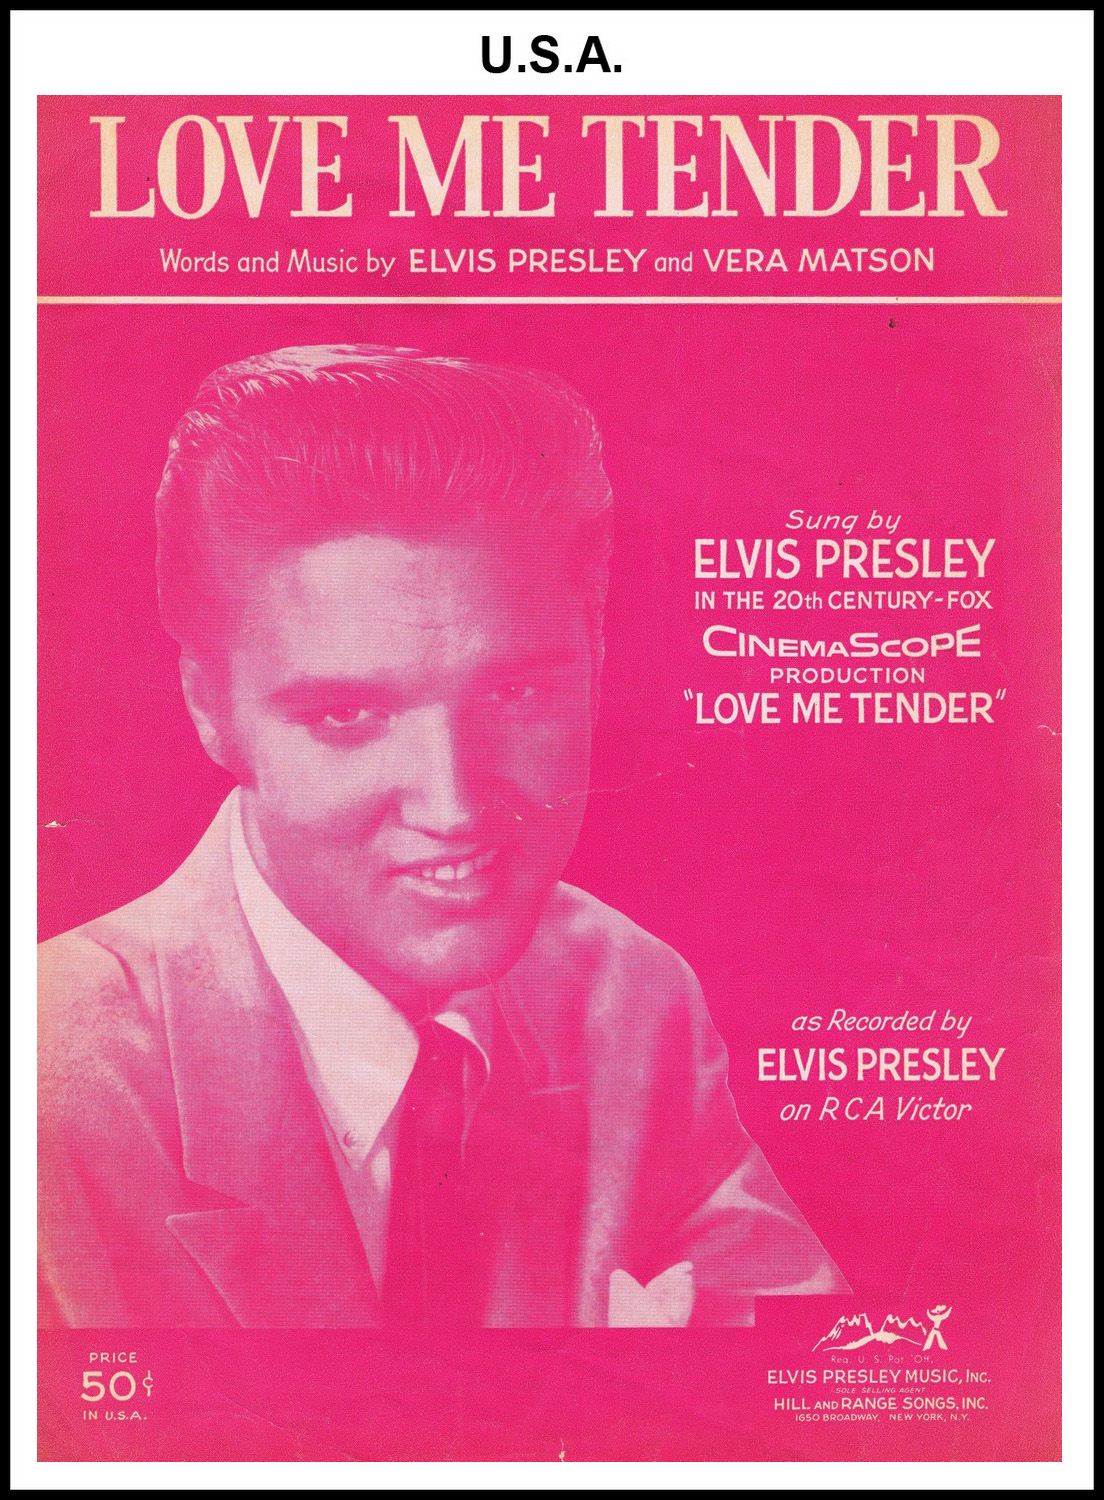 1956 - Love Me Tender (USA 50c) (CHRIS GILES COLLECTION)